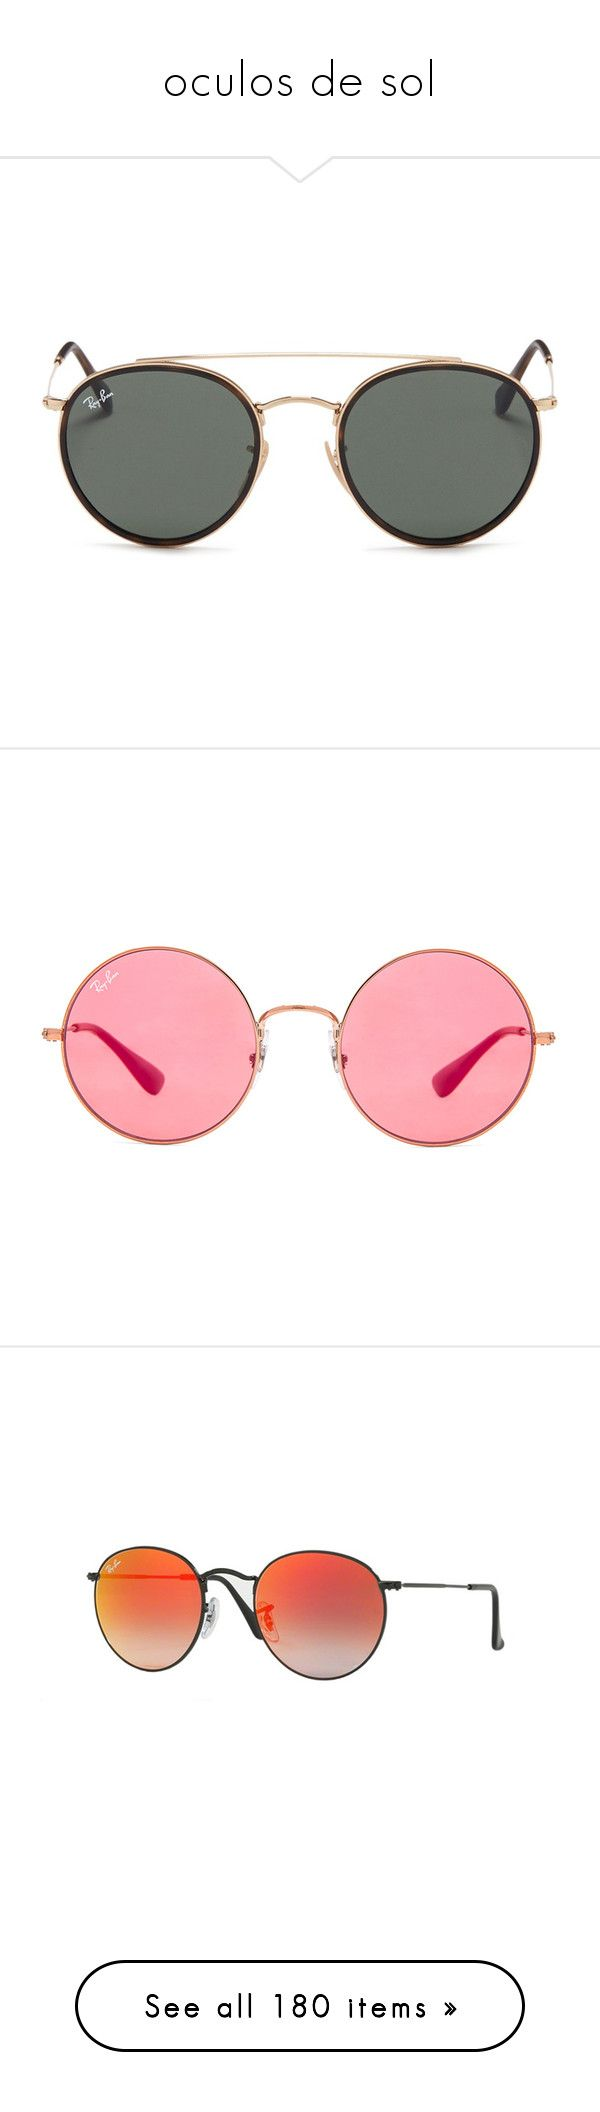 """""""oculos de sol"""" by dudas2pinheiro ❤ liked on Polyvore featuring accessories, eyewear, sunglasses, óculos, metallic, sports sunglasses, round glasses, round tortoiseshell glasses, round tortoise sunglasses and metal sunglasses"""